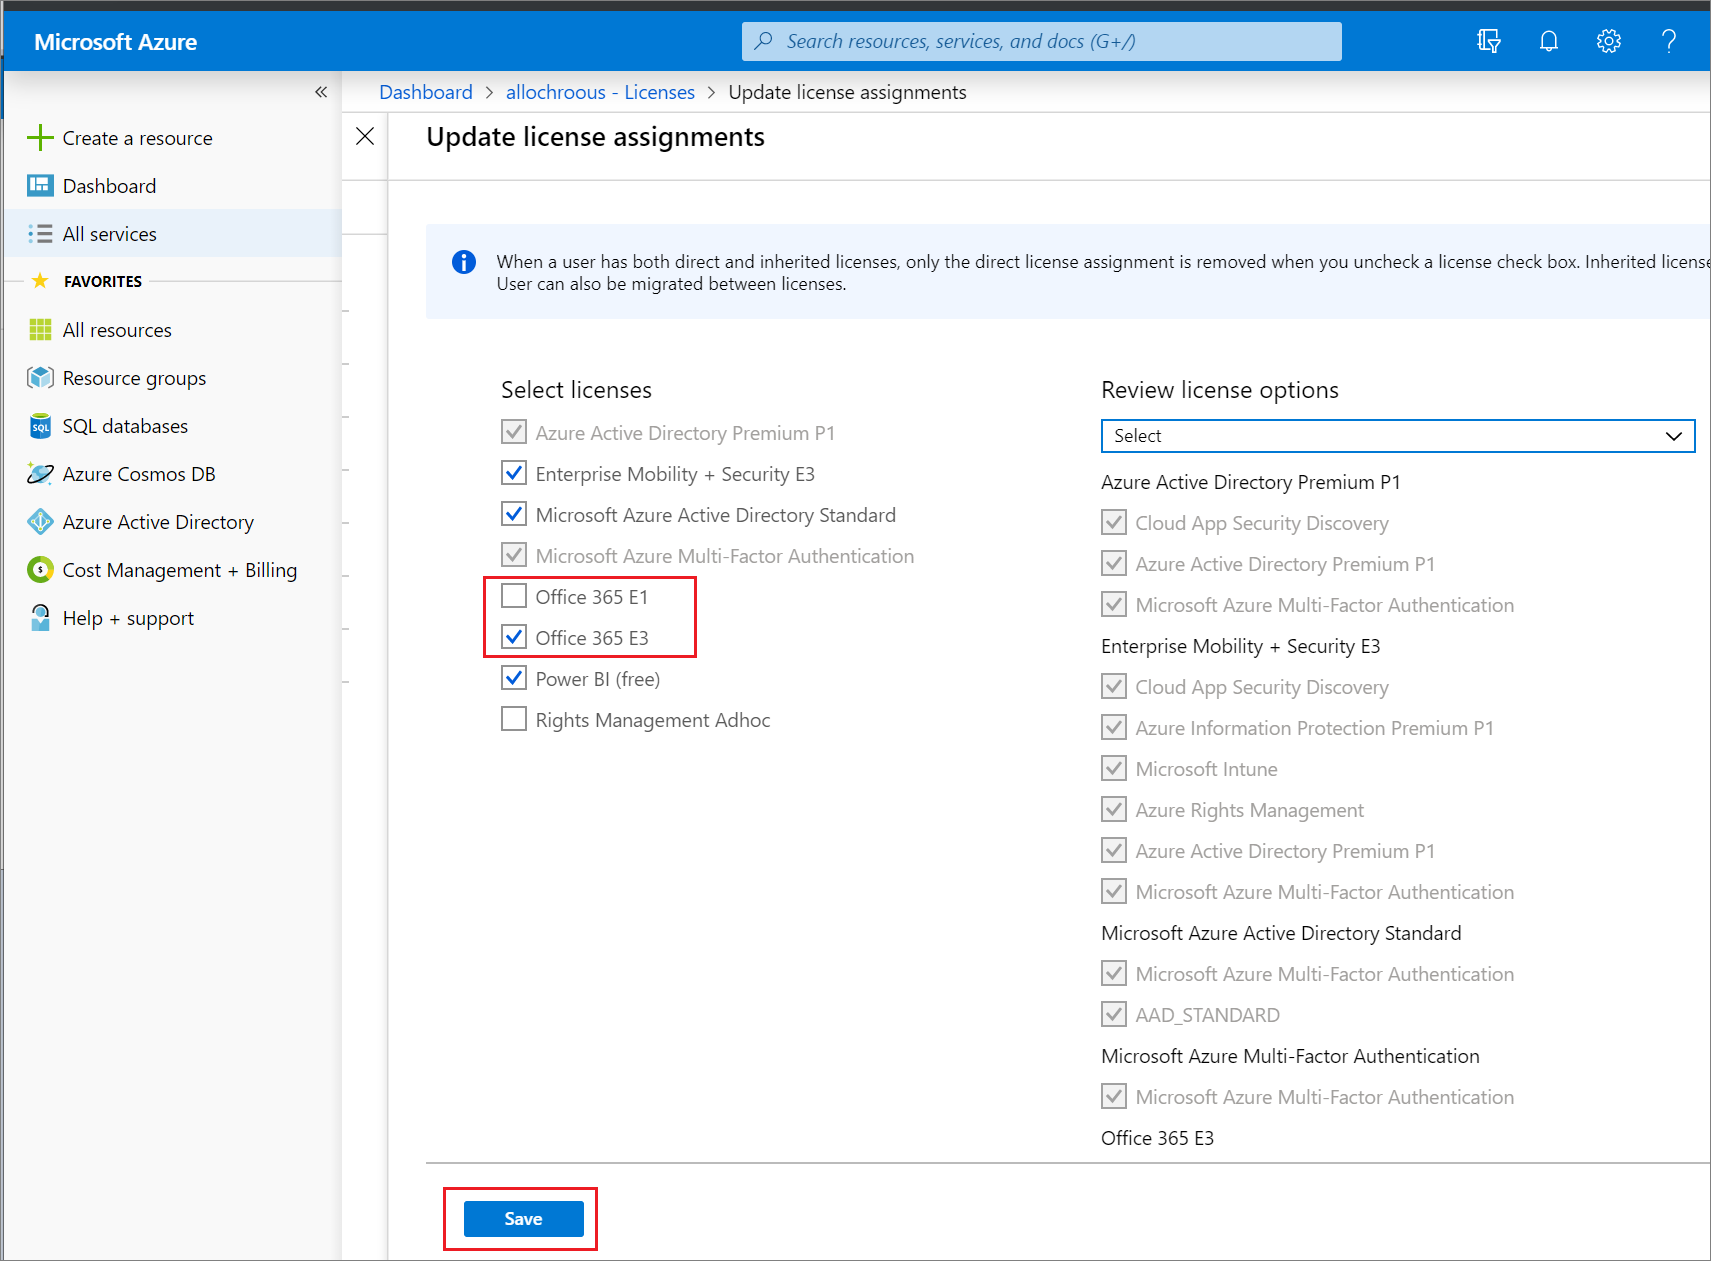 license assignments page for a user showing Office 365 E1 cleared and Office 365 E3 selected